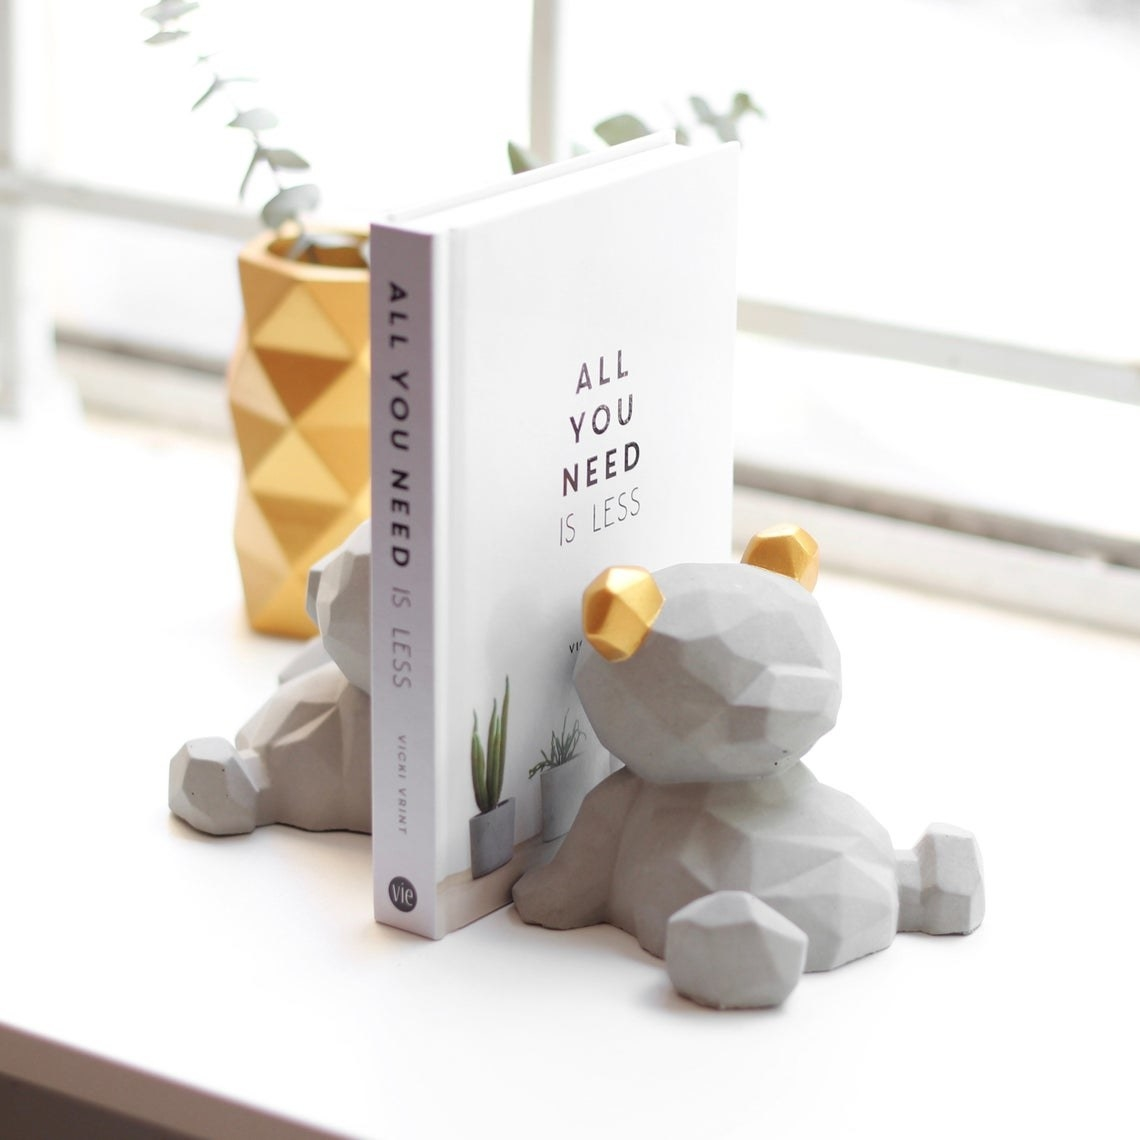 A pair of clay bookends in the shape of small bears with a book between them